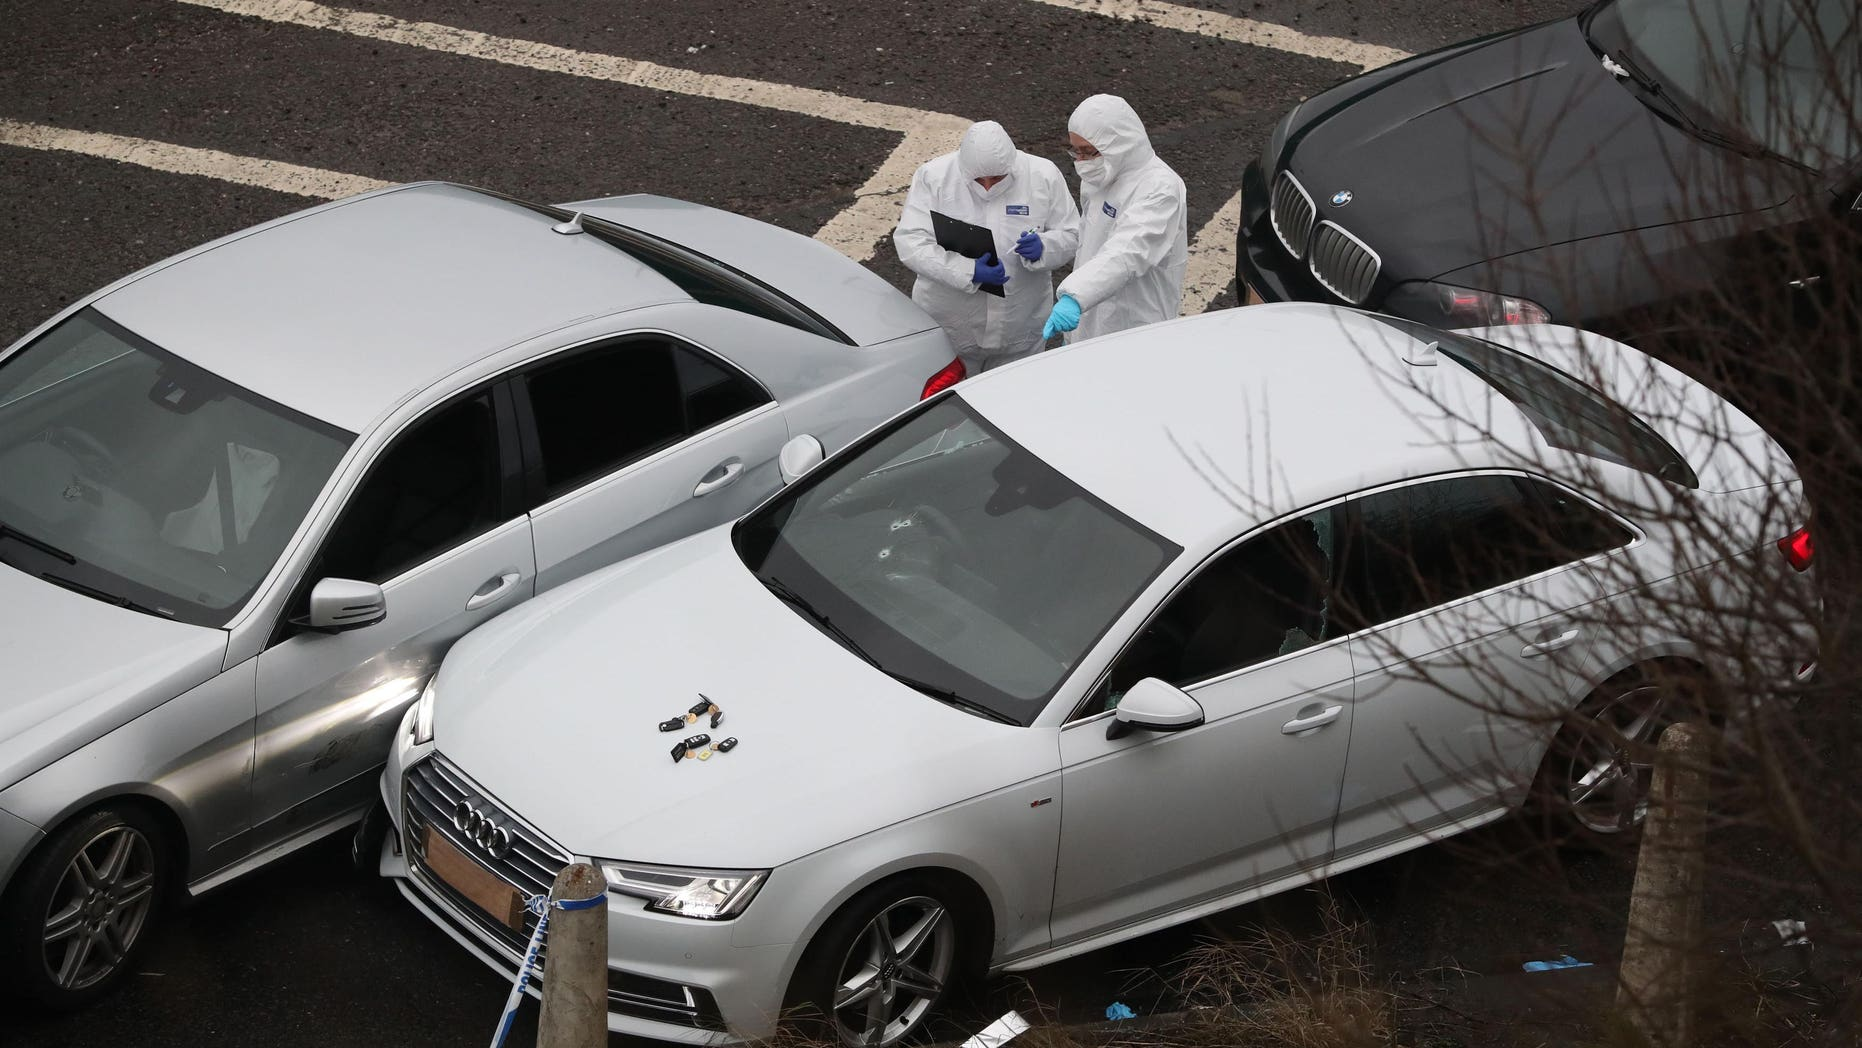 Police forensic officers examine a silver Audi with bullet holes in the windscreen at the scene near the M62 motorway in Huddersfield, England, early Tuesday Jan. 3, 2017.  An unidentified man died in a police shooting Monday evening during a police operation, with no other details released by the authorities. (Peter Byrne / PA via AP)